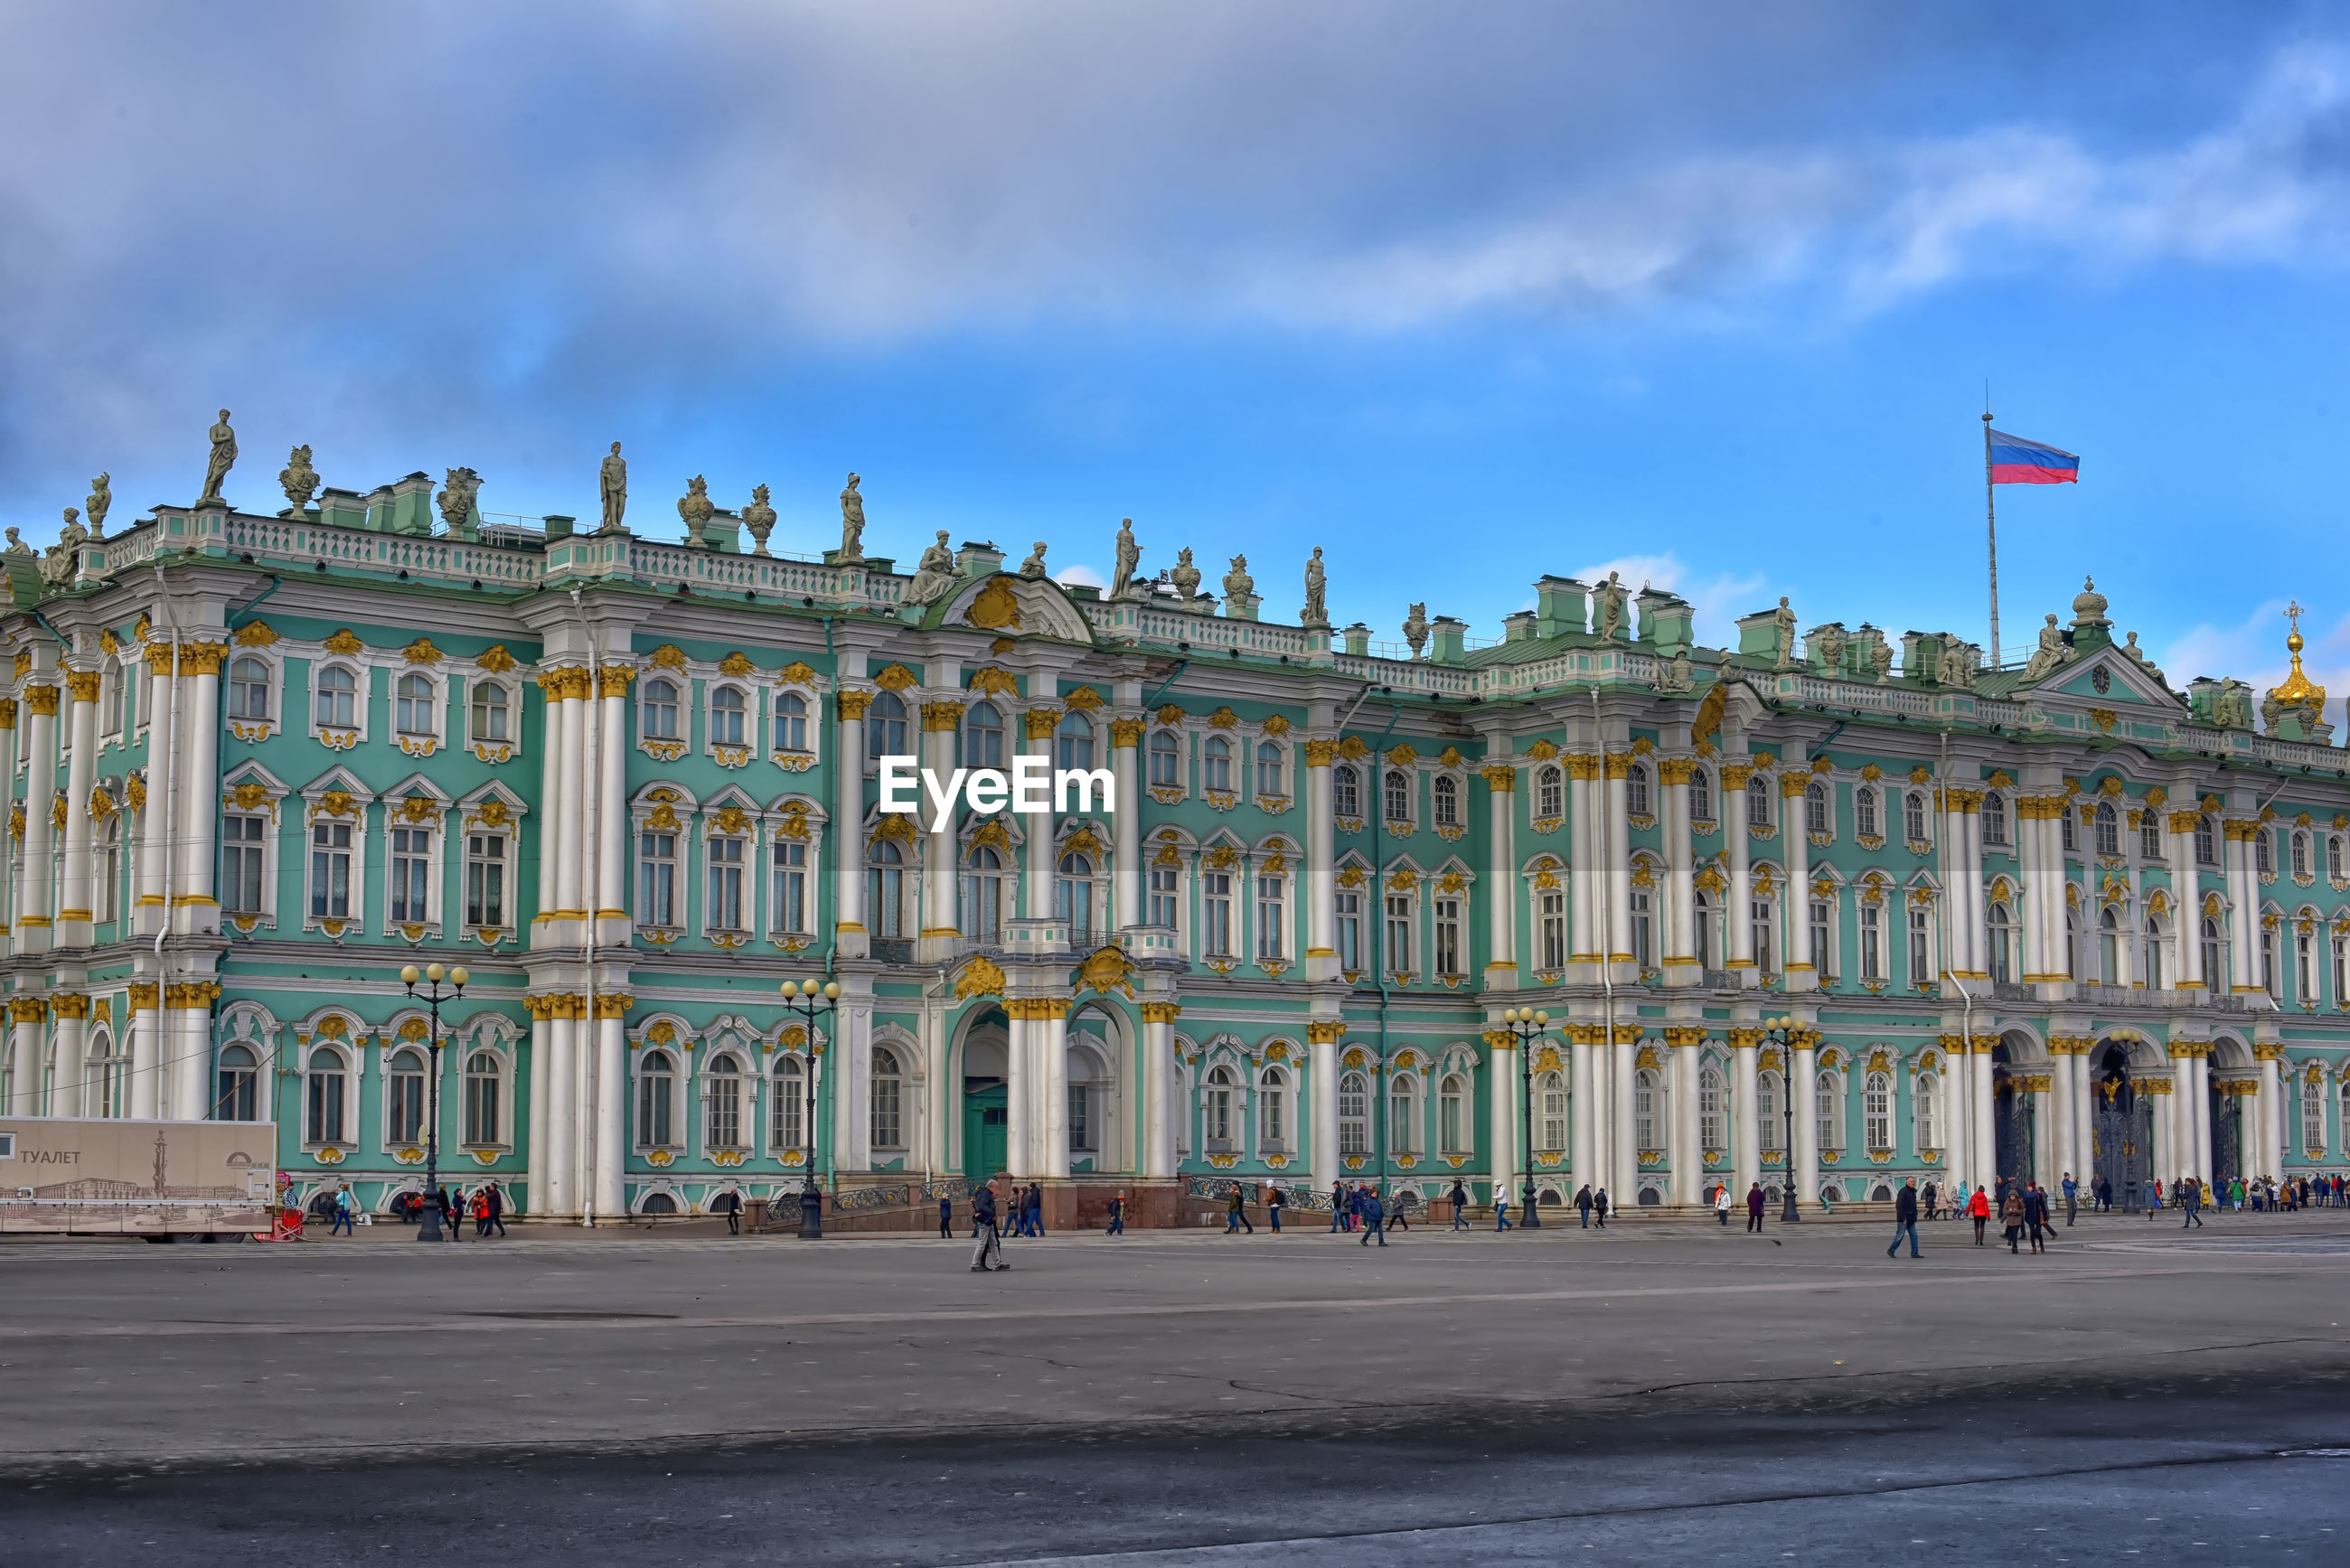 FACADE OF HISTORICAL BUILDING AGAINST SKY